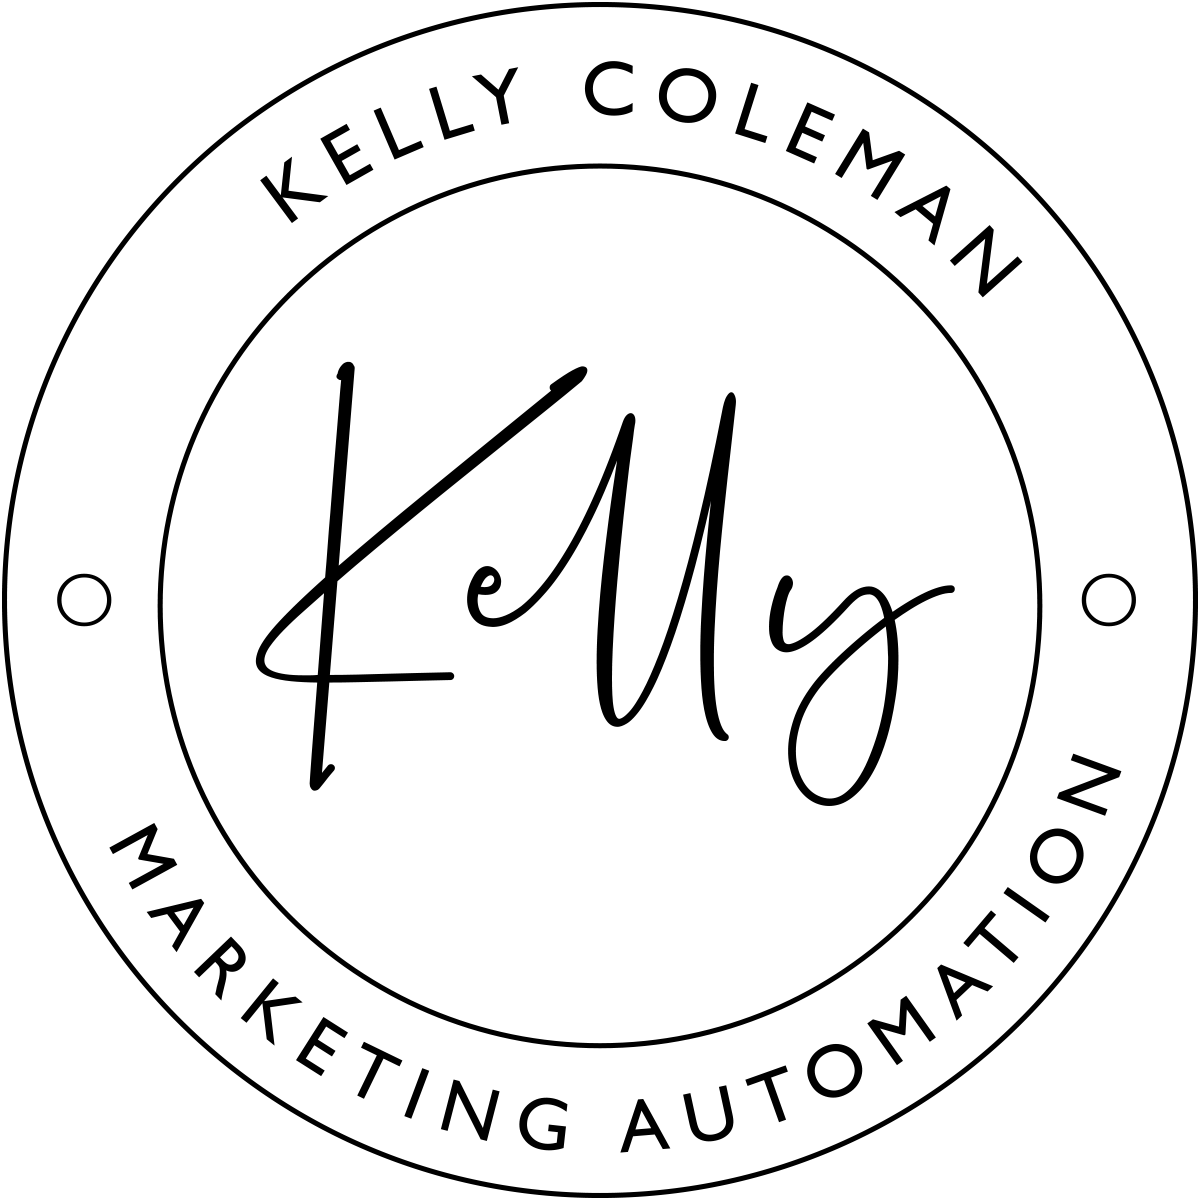 Kelly Coleman - Marketing Automation